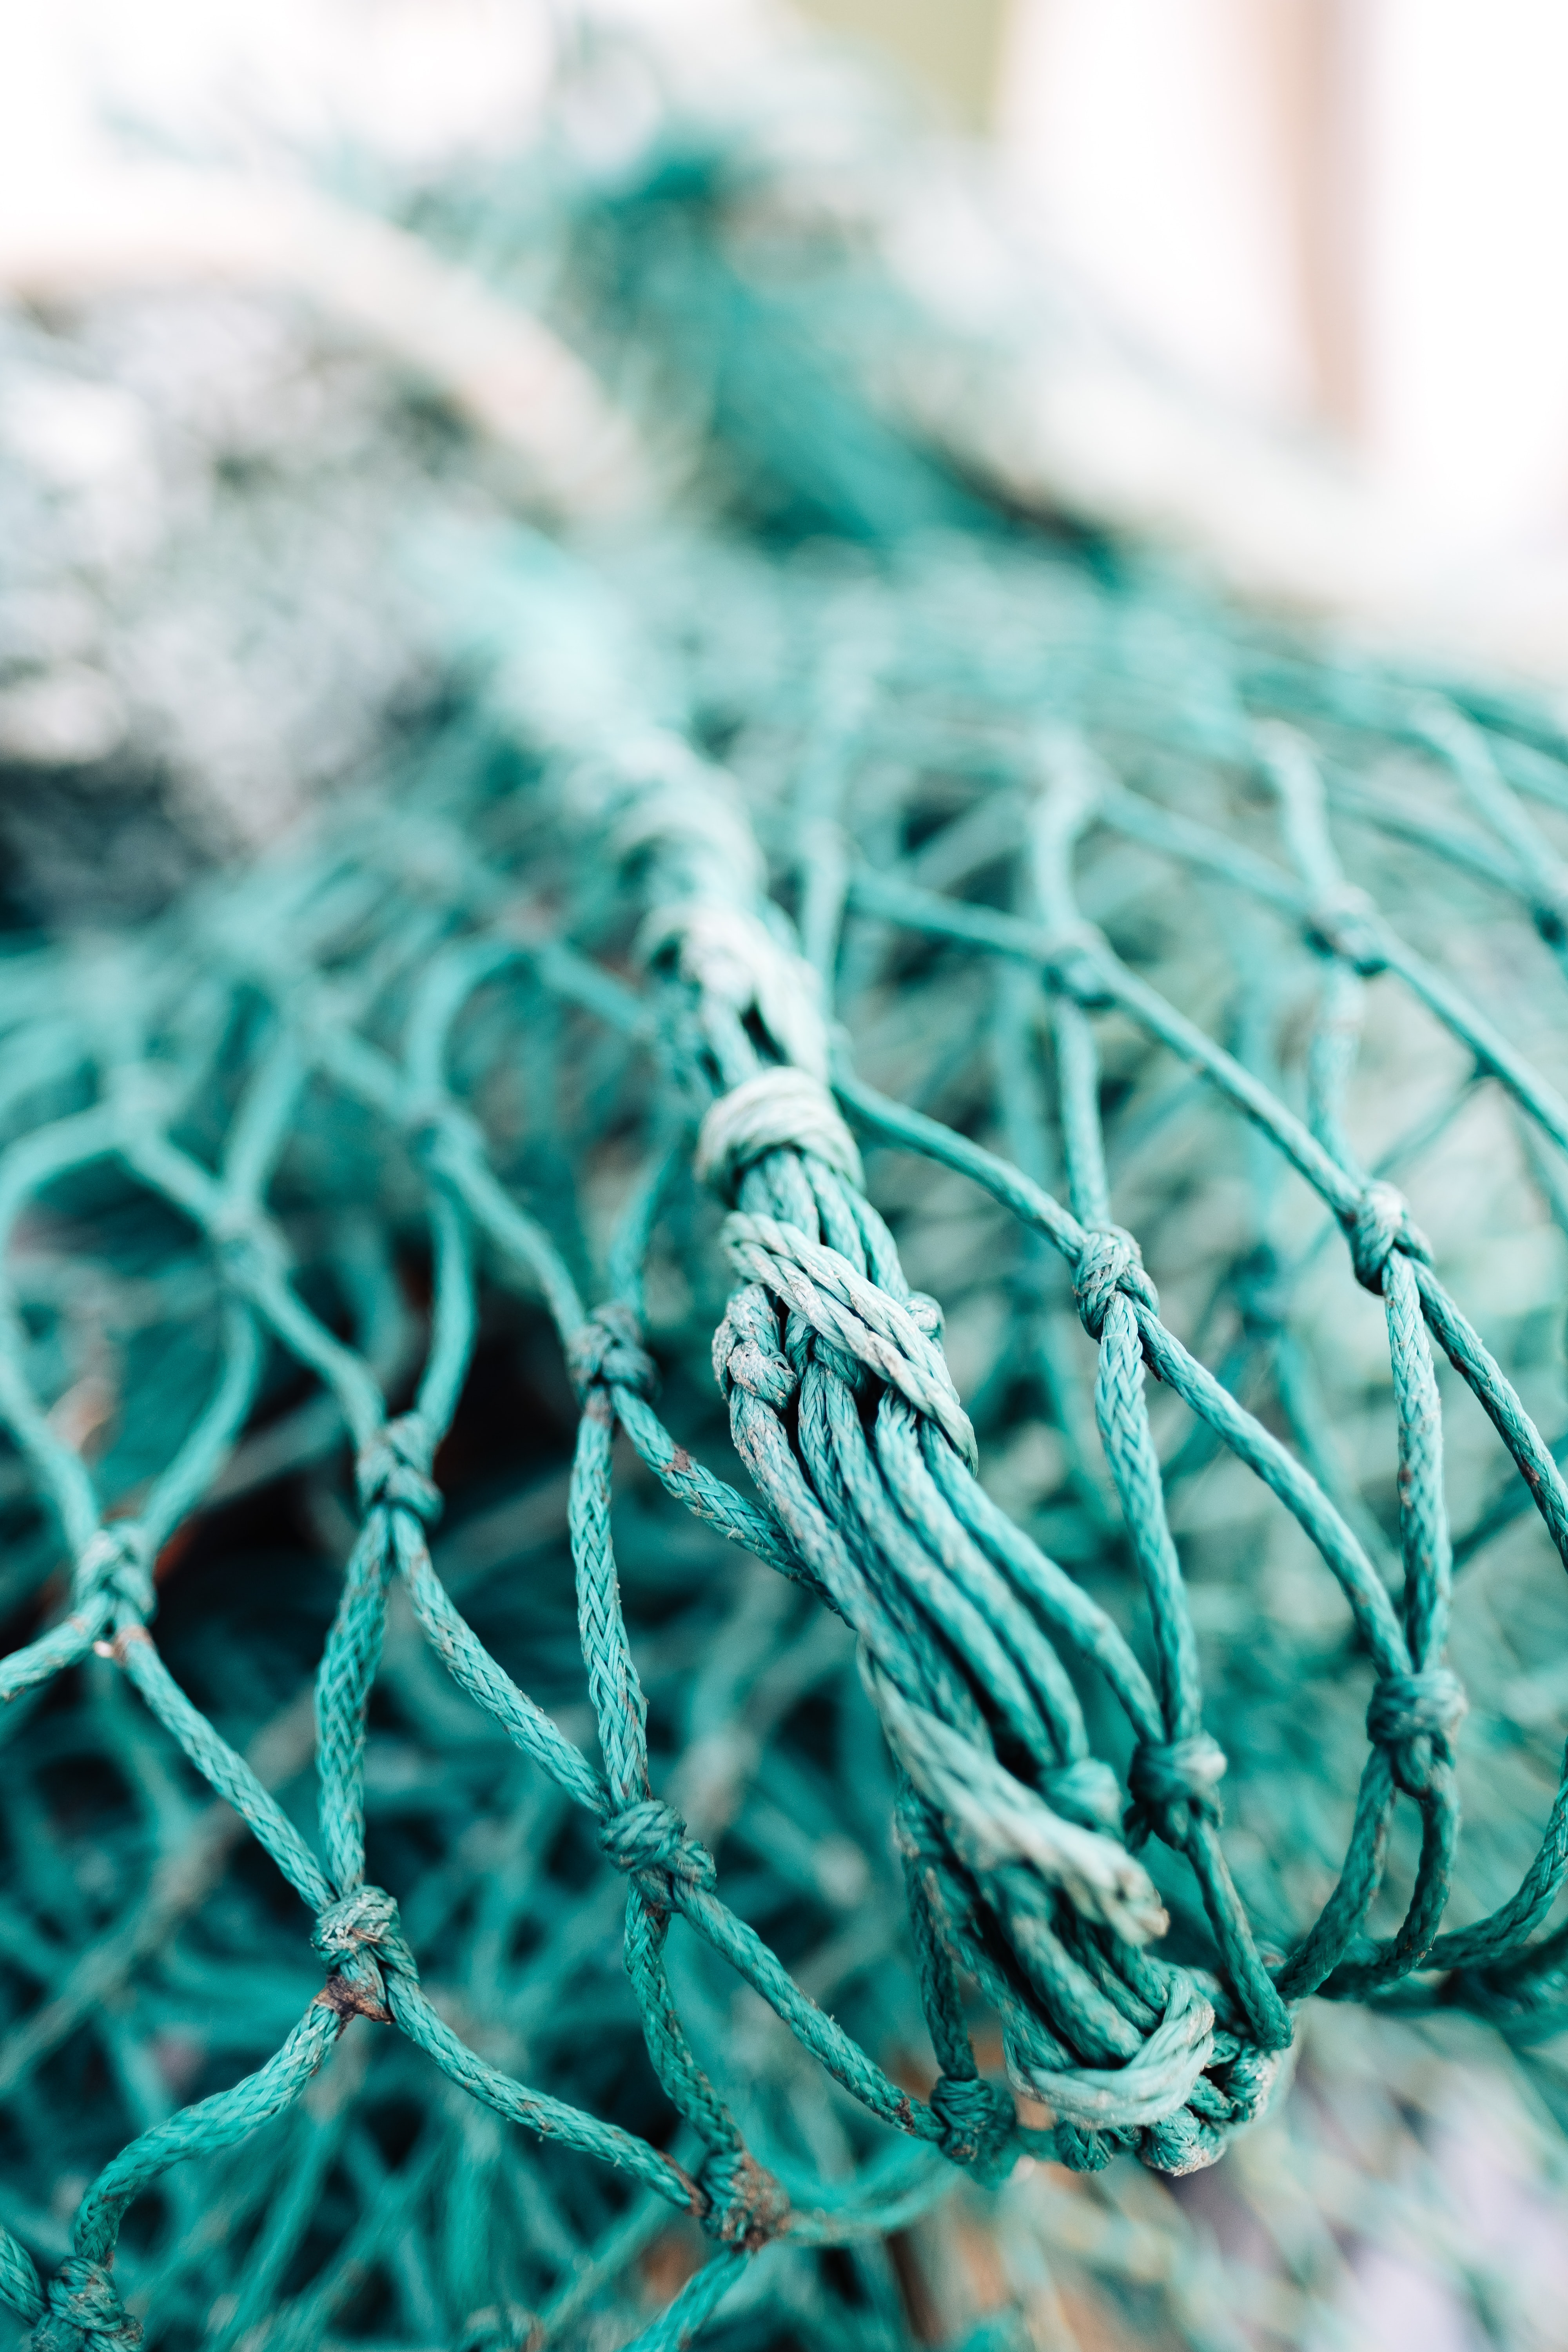 green fish net in shallow focus photography